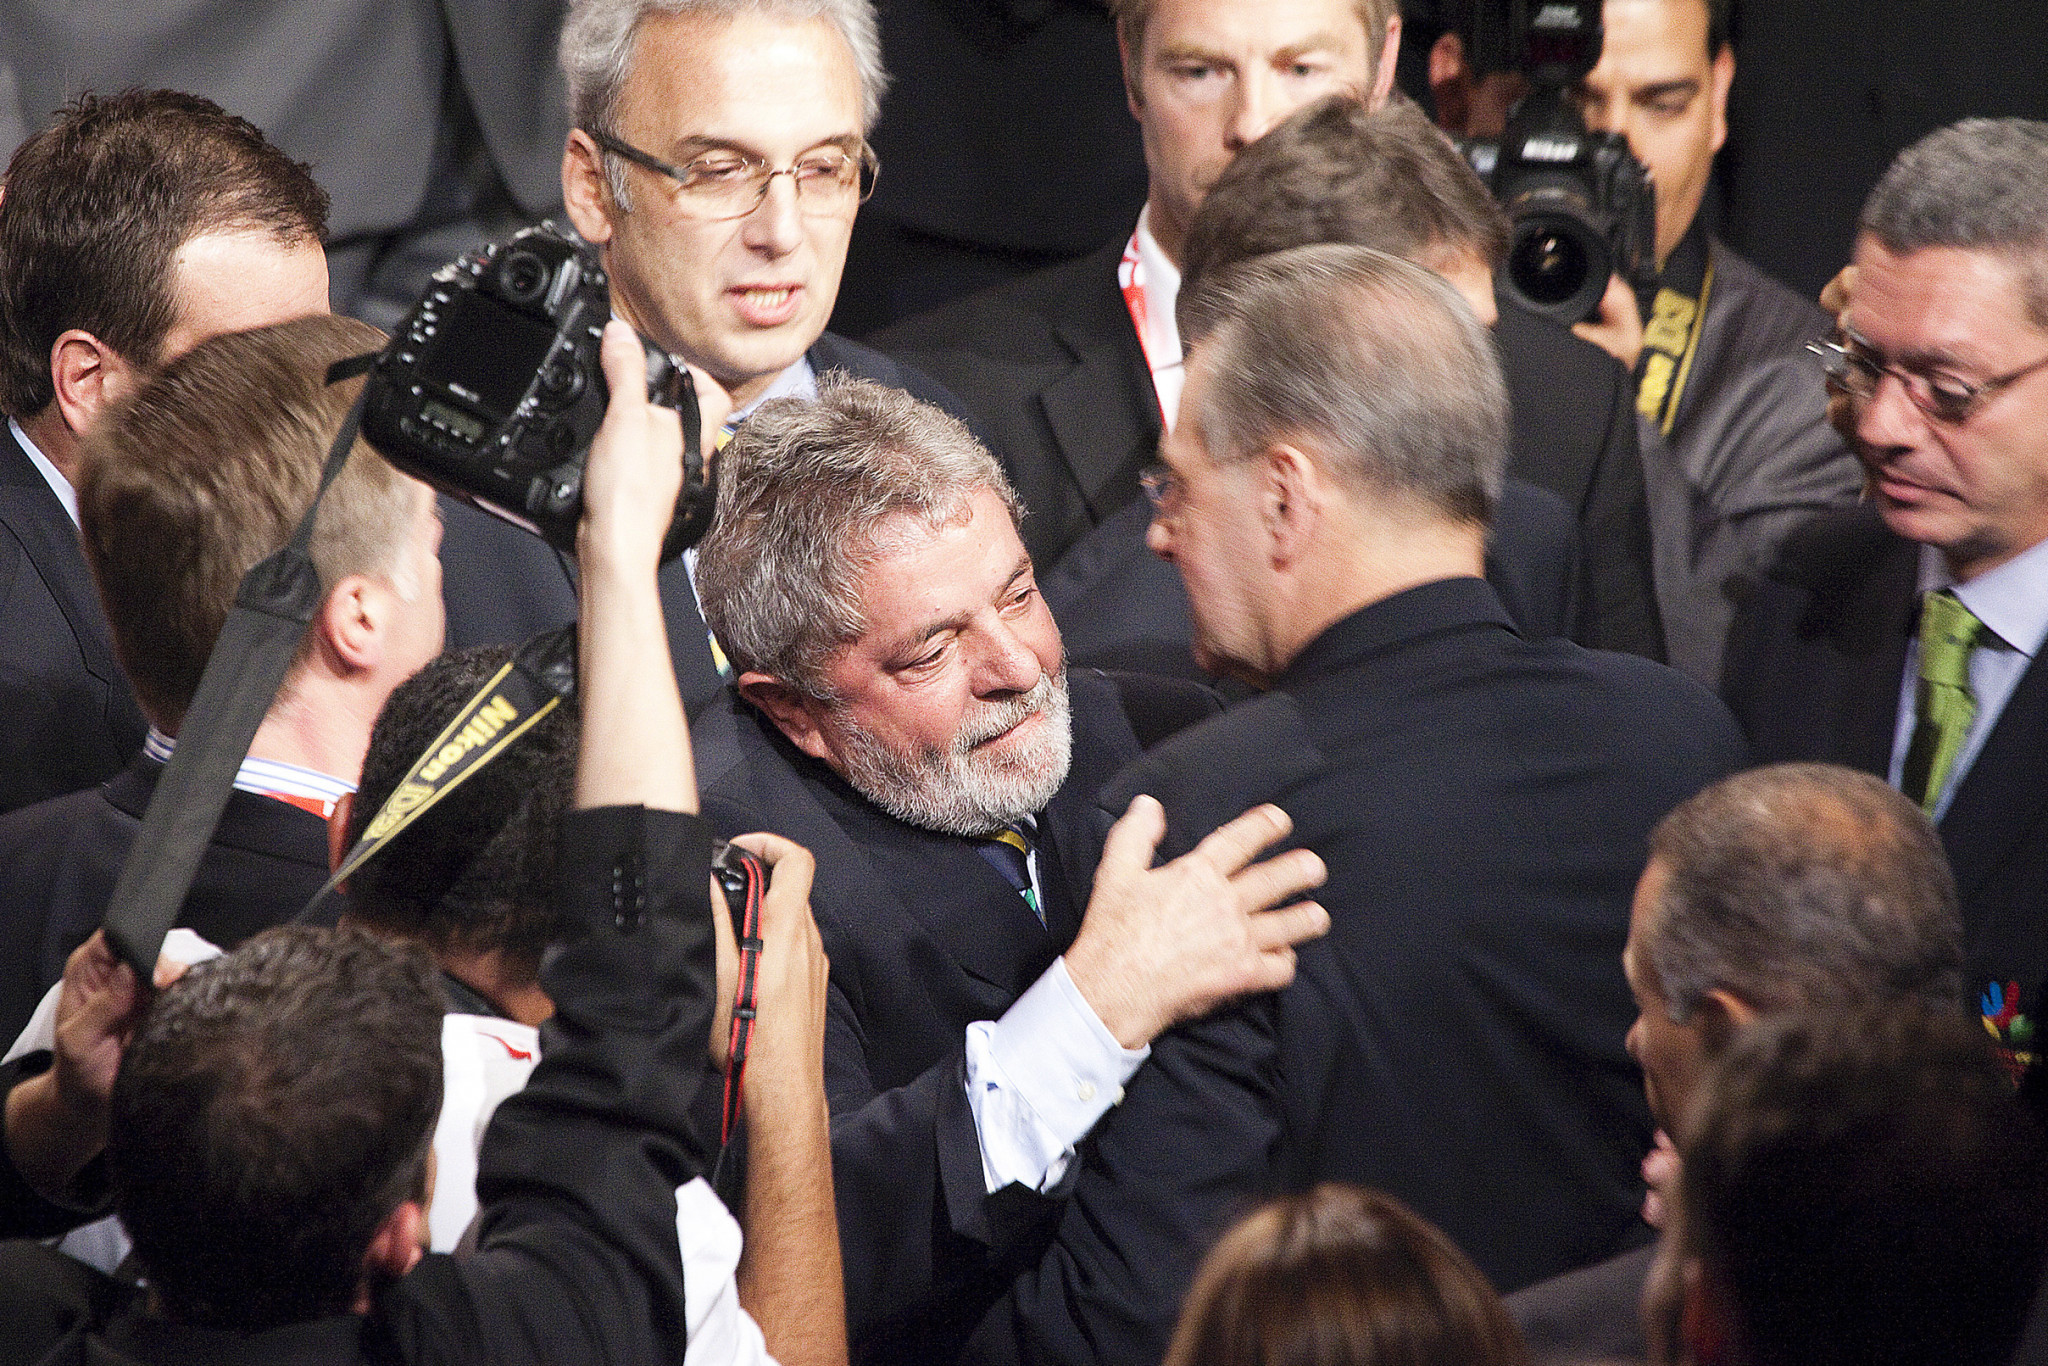 Luiz Inacio Lula da Silva, left, pictured embracing then-IOC President Jacques Rogge after Rio was awarded the Olympics in 2009 ©Getty Images